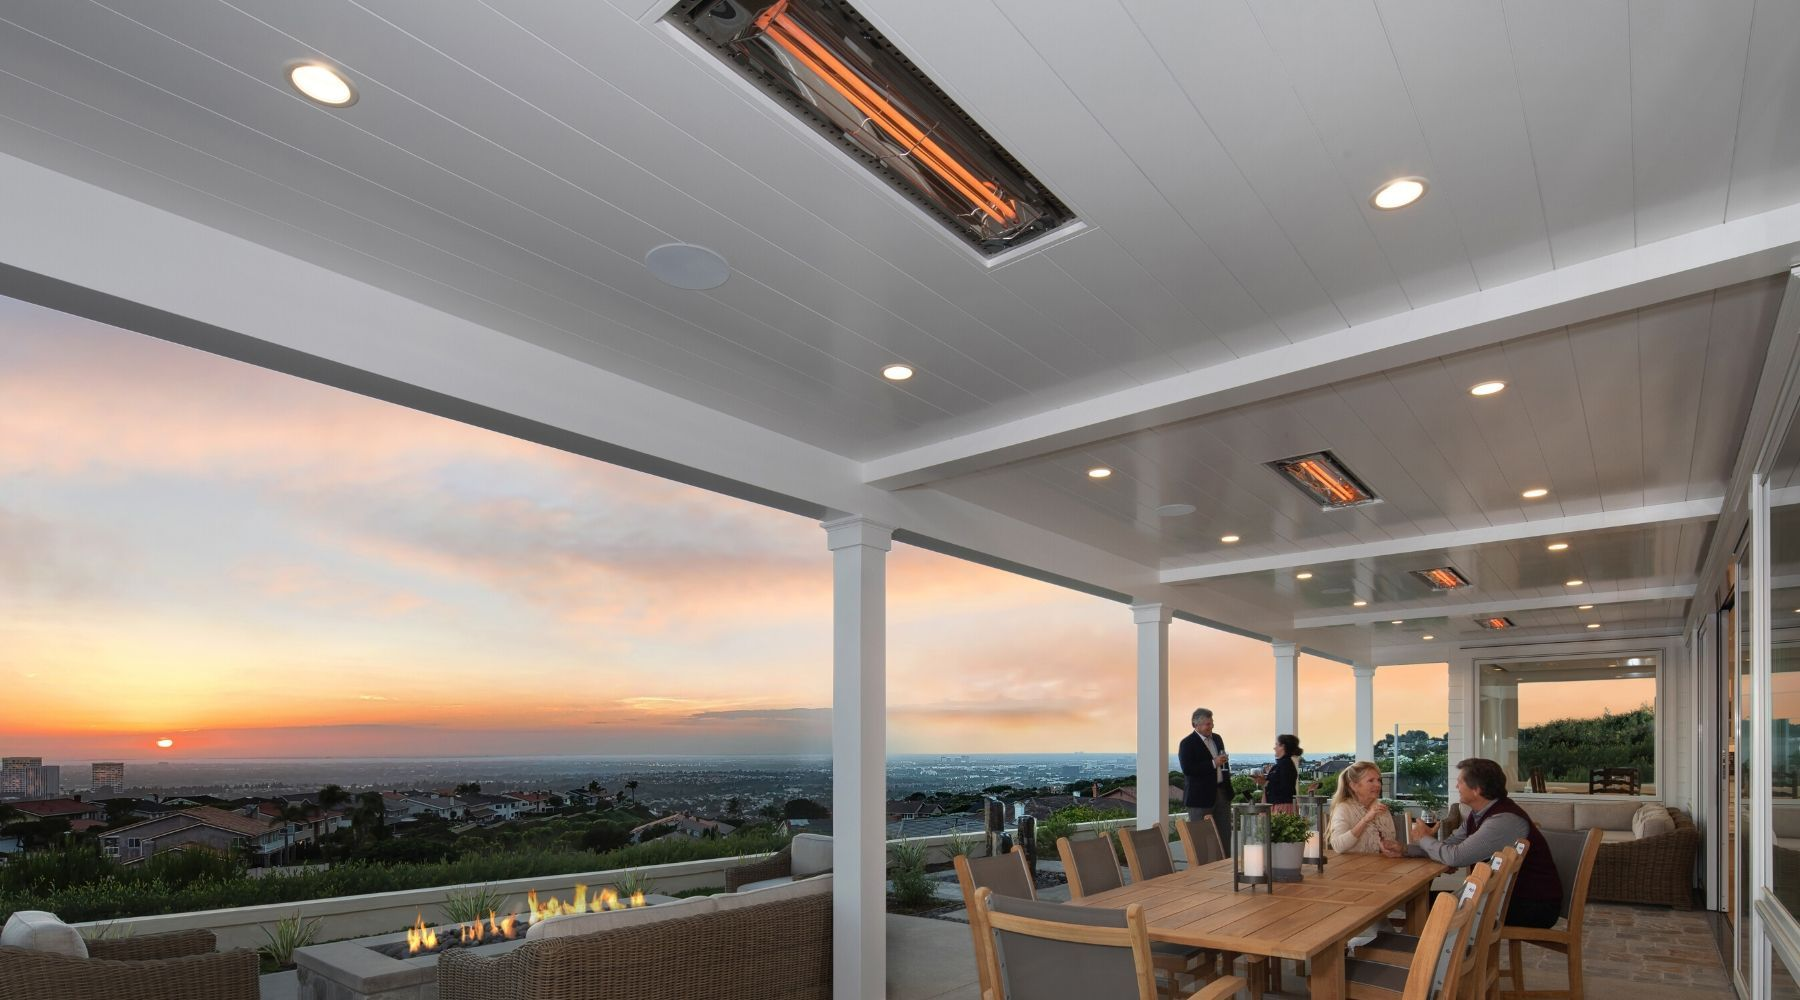 Flush Mounted Patio Heaters